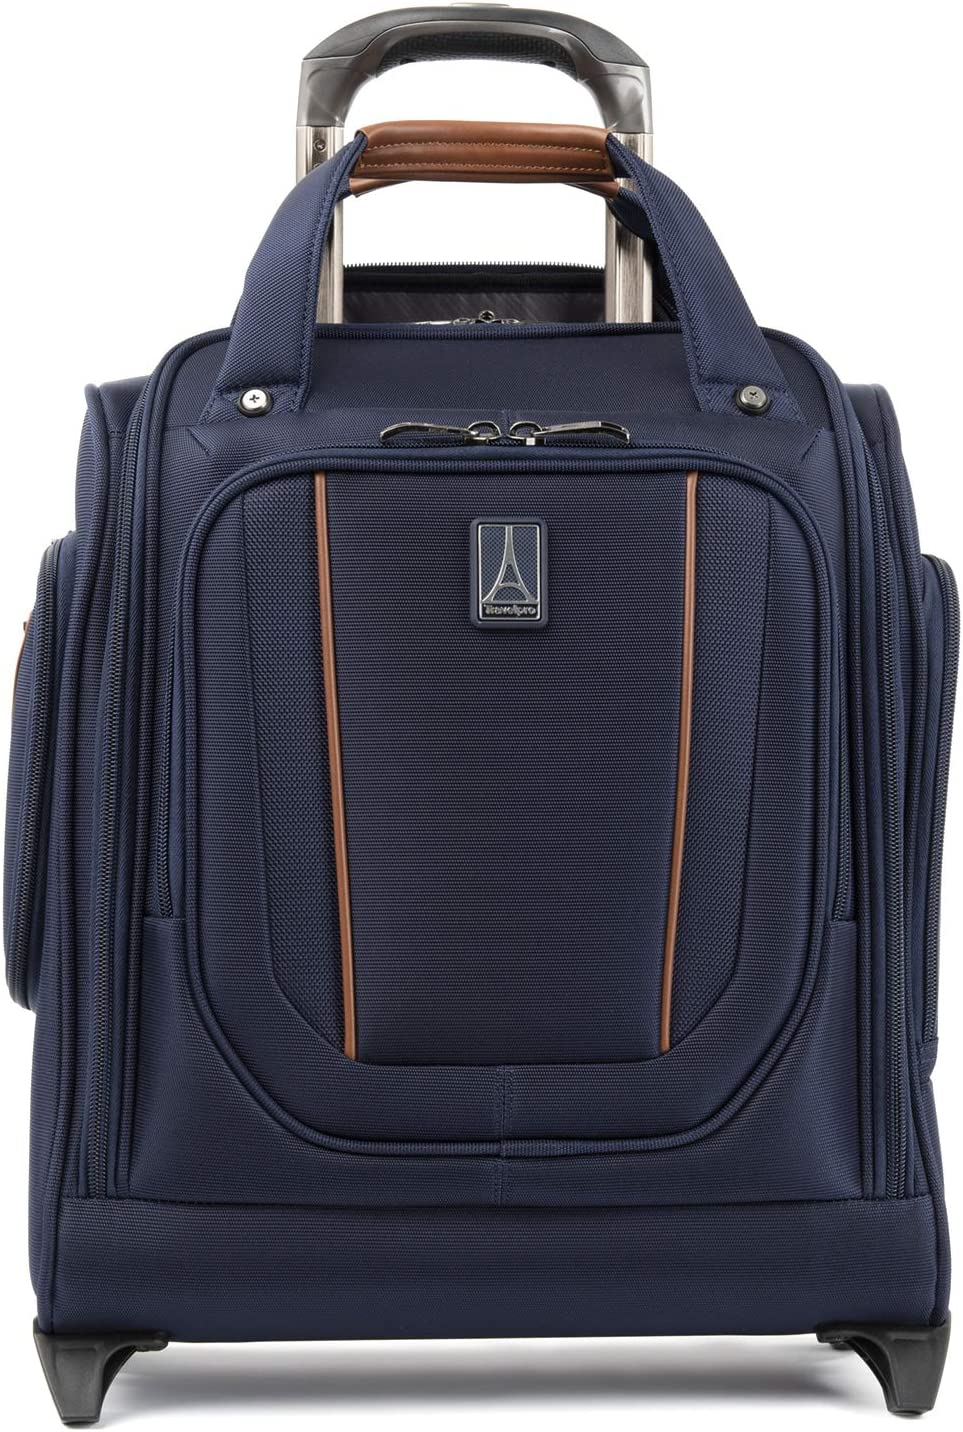 Travelpro Crew Versapack-Rolling Underseat Carry-on Bag, Patriot Blue, One Size